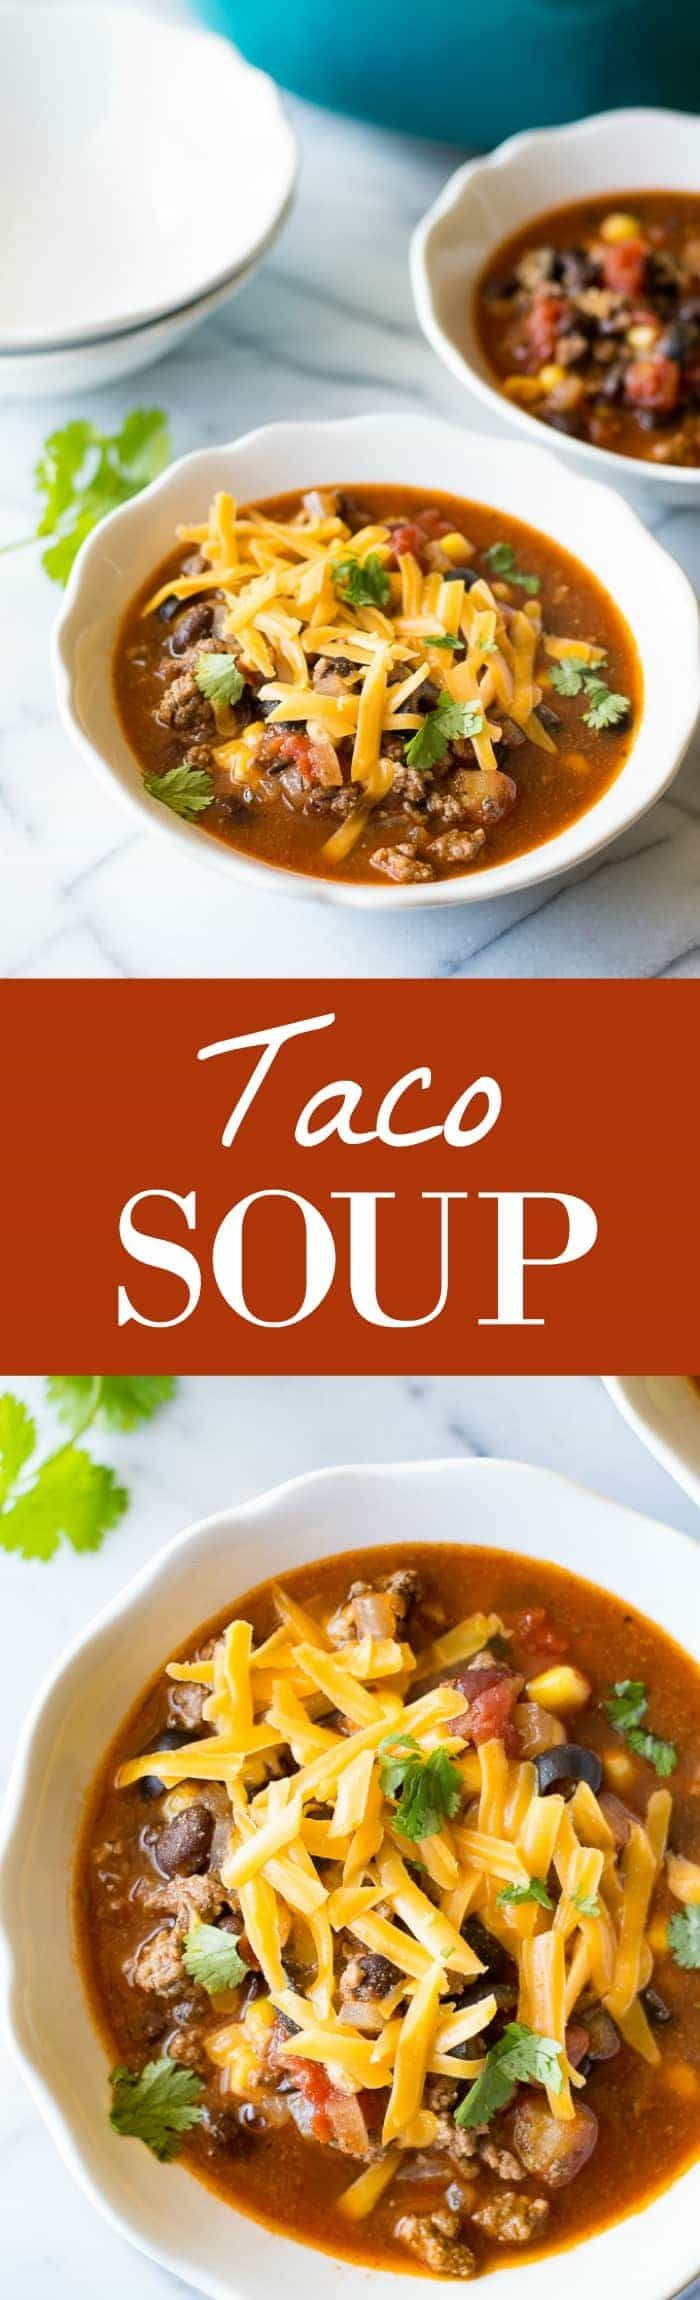 Get cozy with this delicious Taco Soup that you can make in under 30 minutes! It's the perfect quick and easy dinner! Taco soup is a definite winner for dinner time. This meal can be made in 30 minutes. The hardest part? Cutting the onion. Seriously though, this soup comes together super quick, it's flavorful, it really...Read More